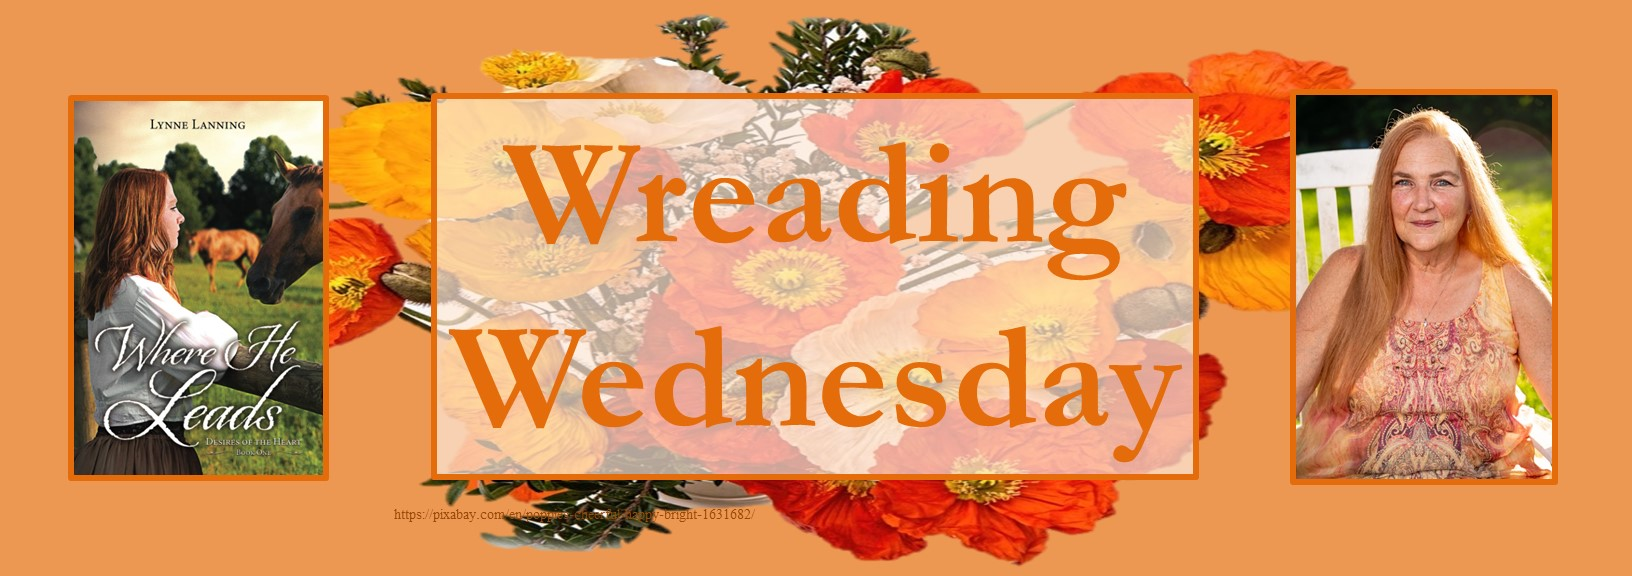 061621 - where He leads - wreading wednesday banner